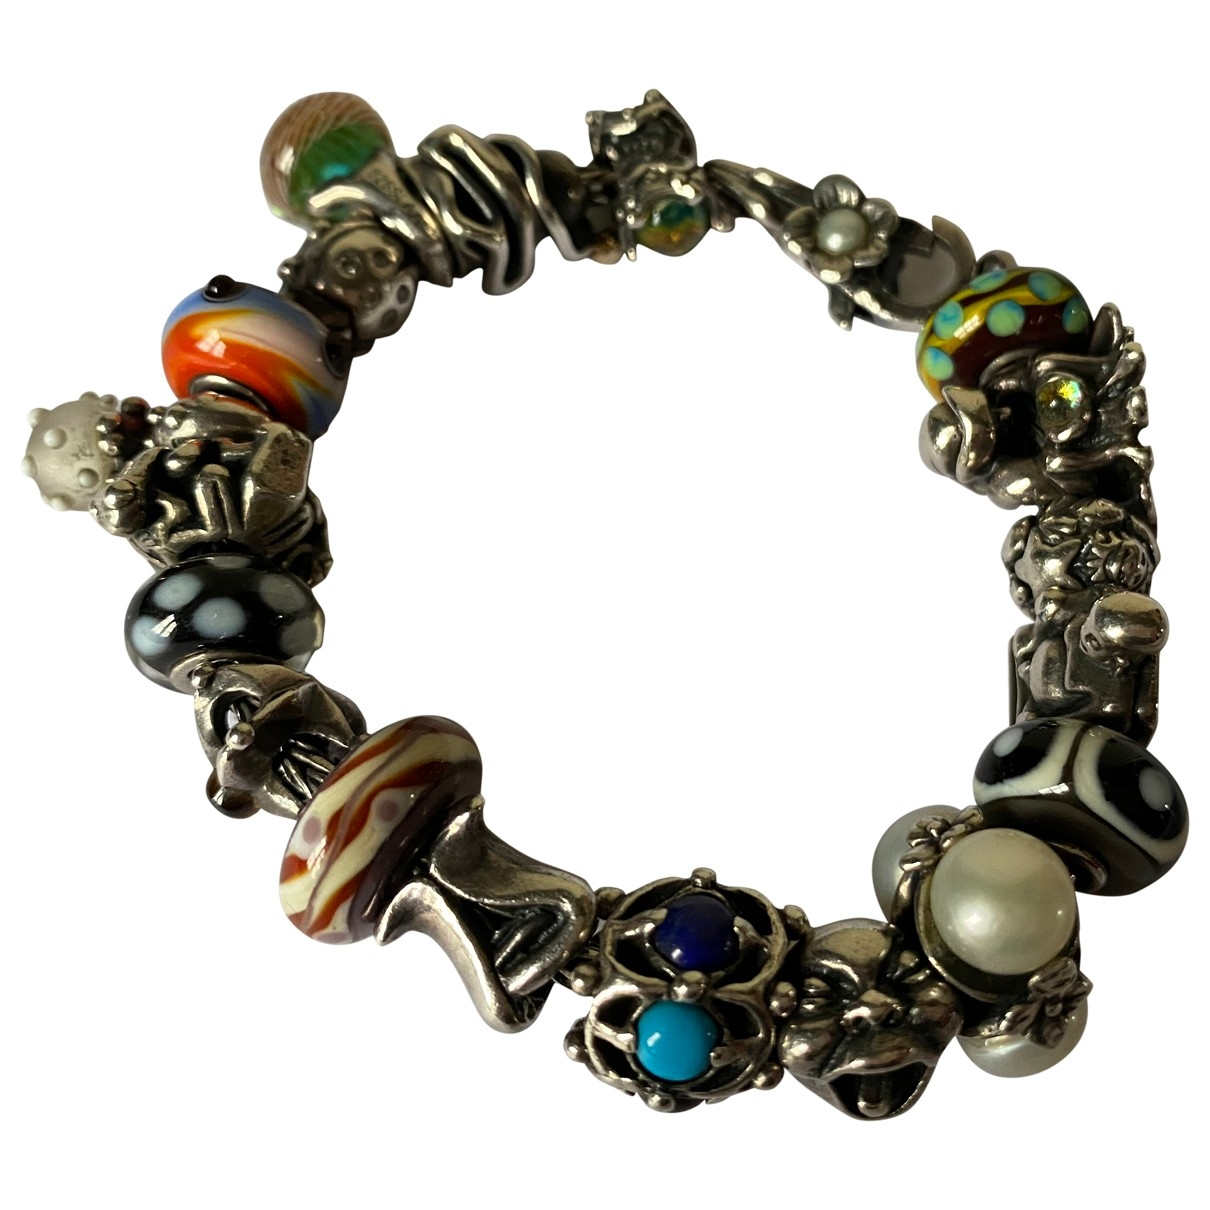 Non Signe / Unsigned \N Armband in  Bunt Silber